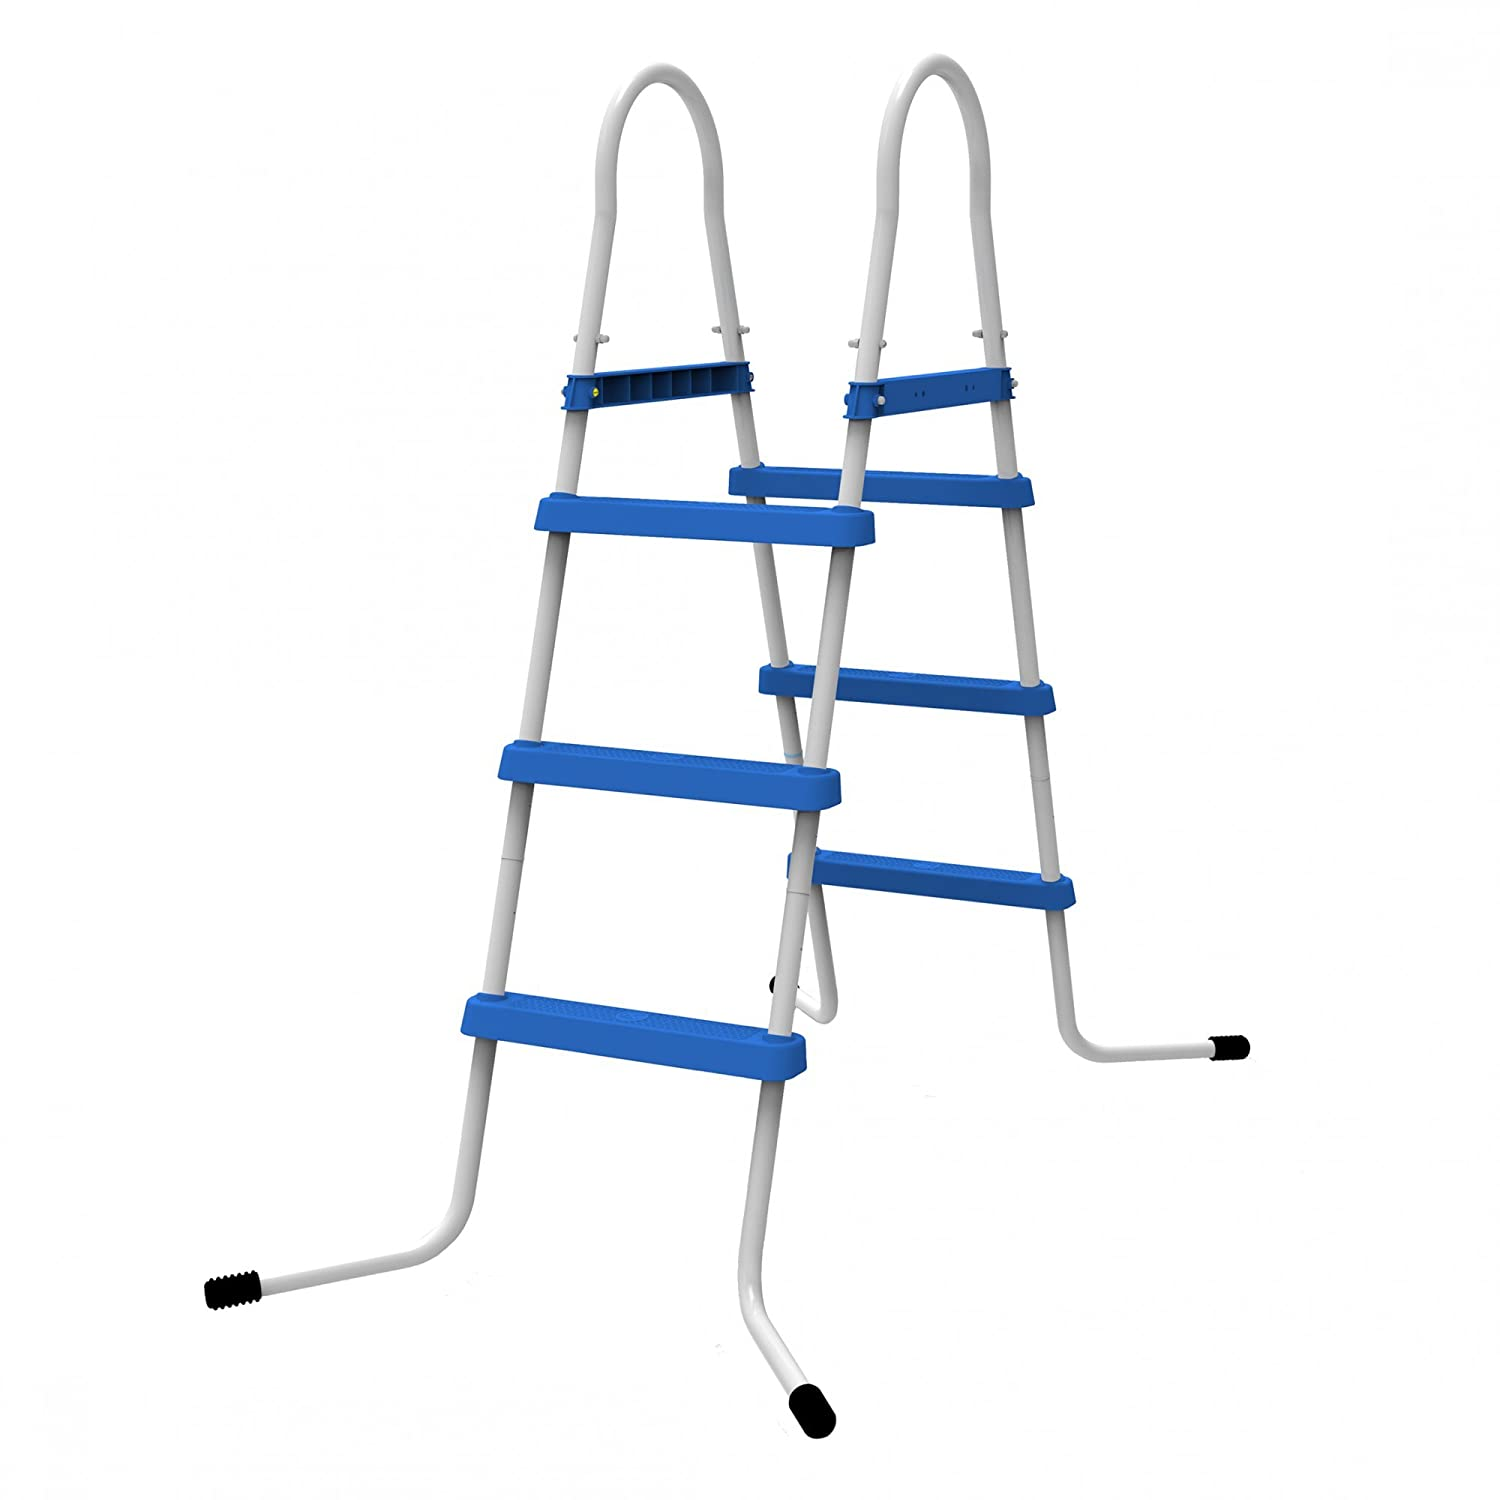 Jilong 3 Tread Pool Ladder for Pool Wall Heights up to 43